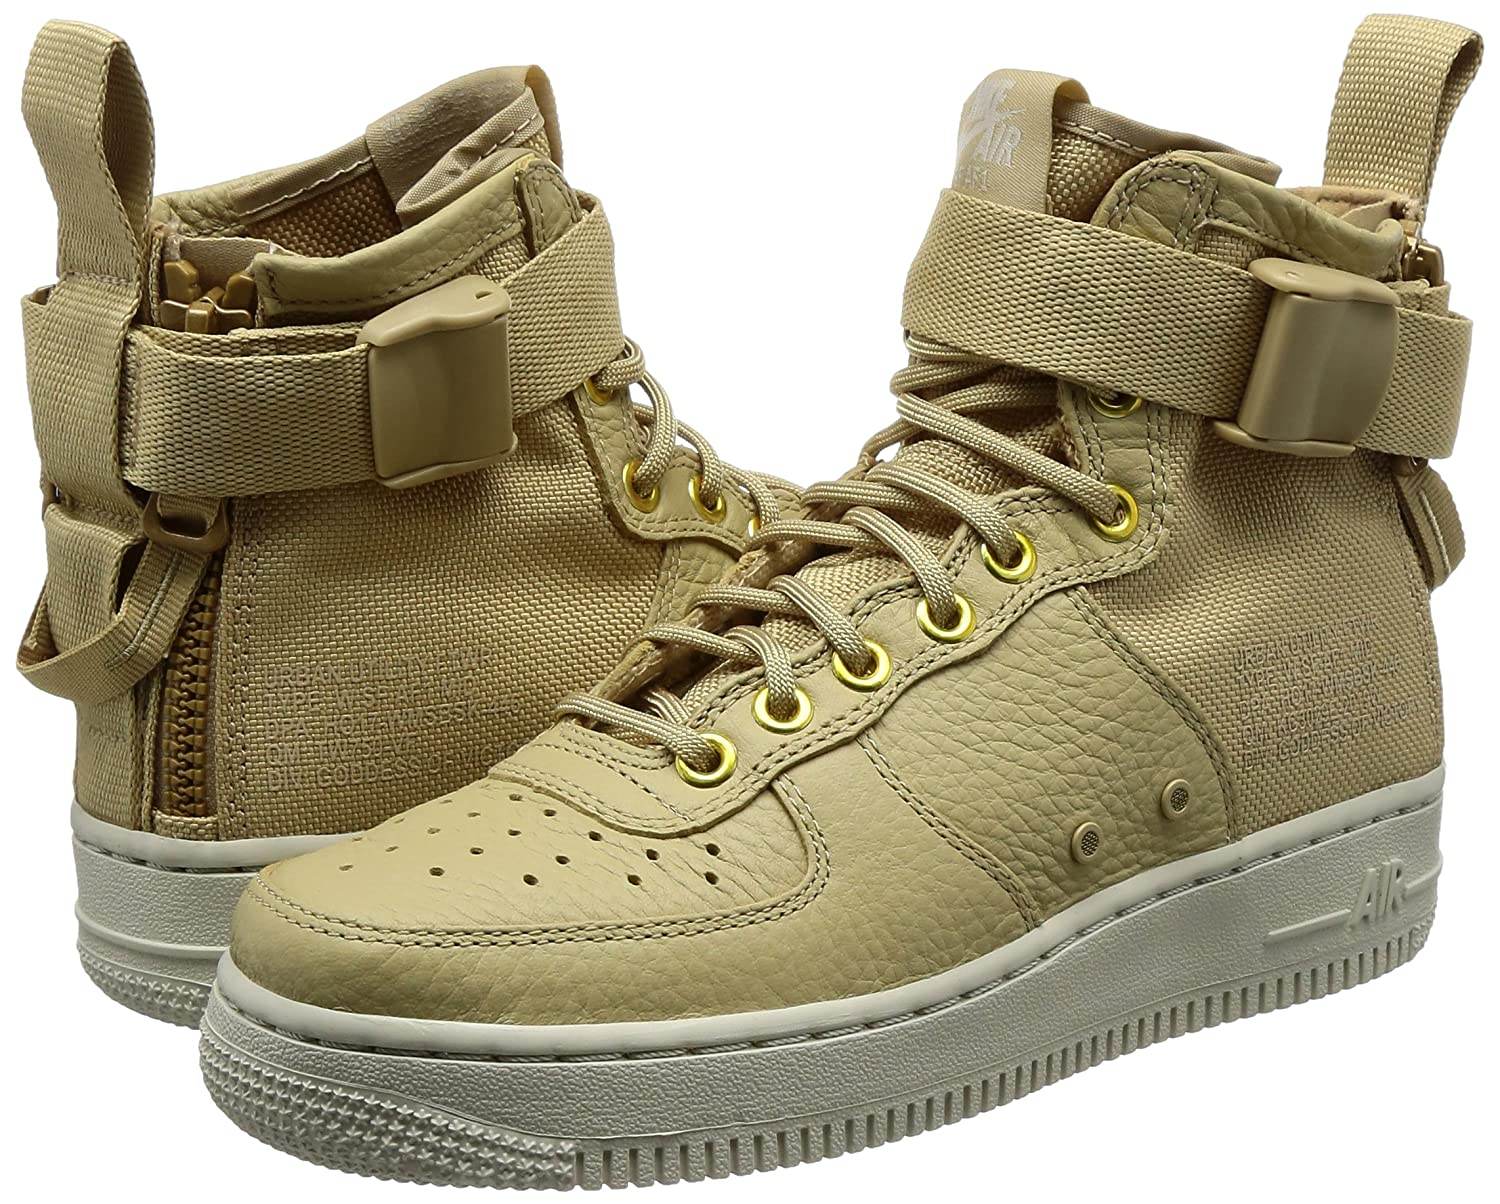 the best attitude 19b32 6e357 NIKE SF Air Force 1 MID Womens Shoes Mushroom Light Bone Champignon aa3966- 200  Amazon.co.uk  Shoes   Bags